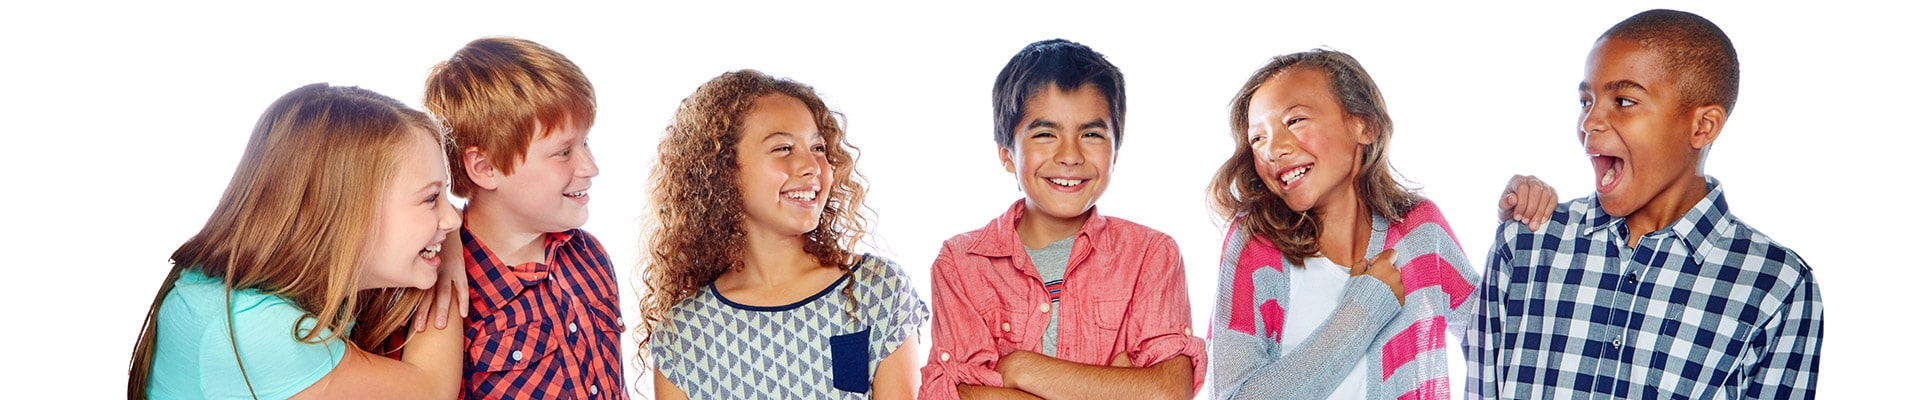 Common orthodontic problems Brace Connection in Downey, CA